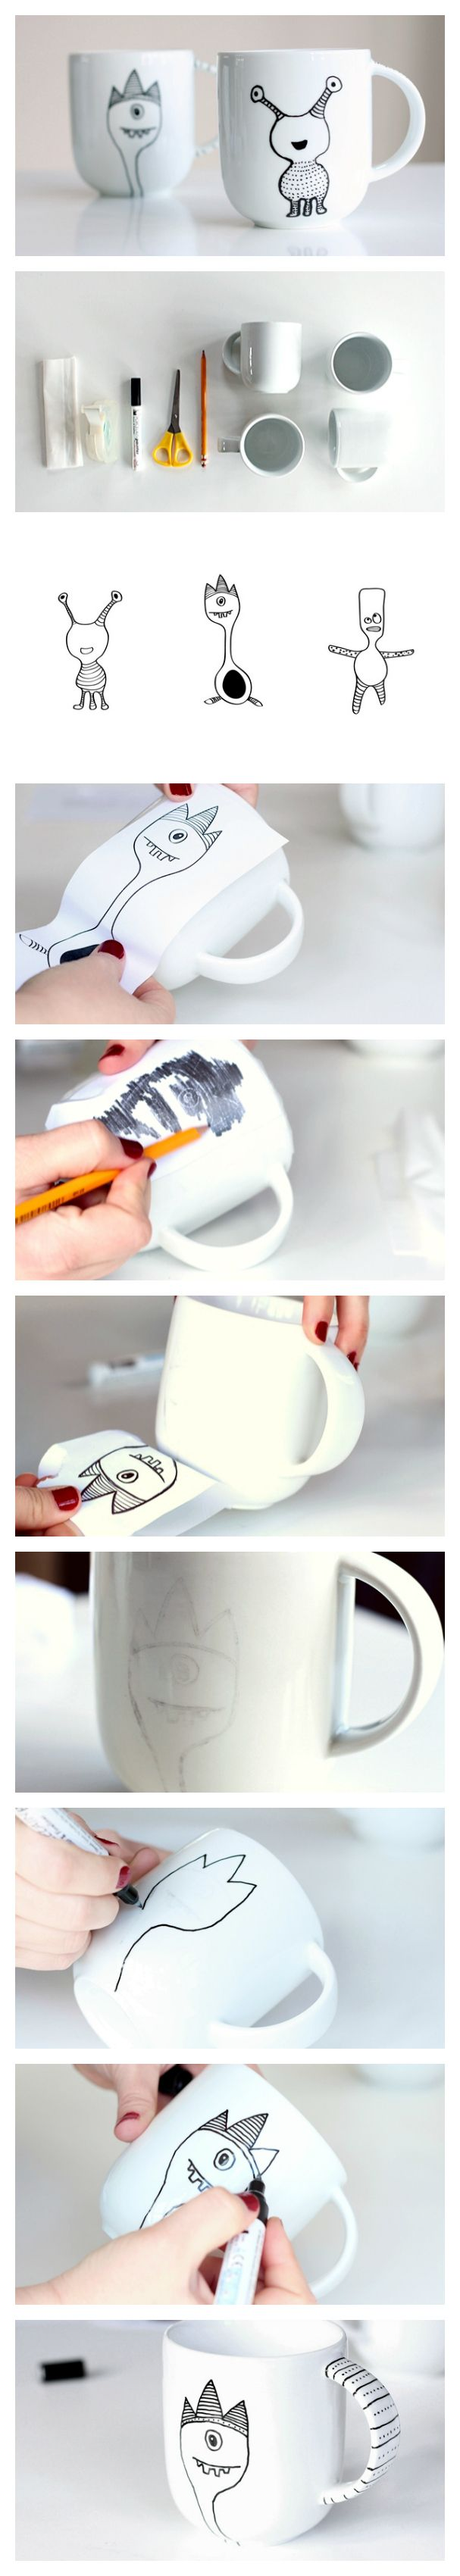 Learn how to decorate a coffee mug with a porcelain marker via craft.tutsplus.com.